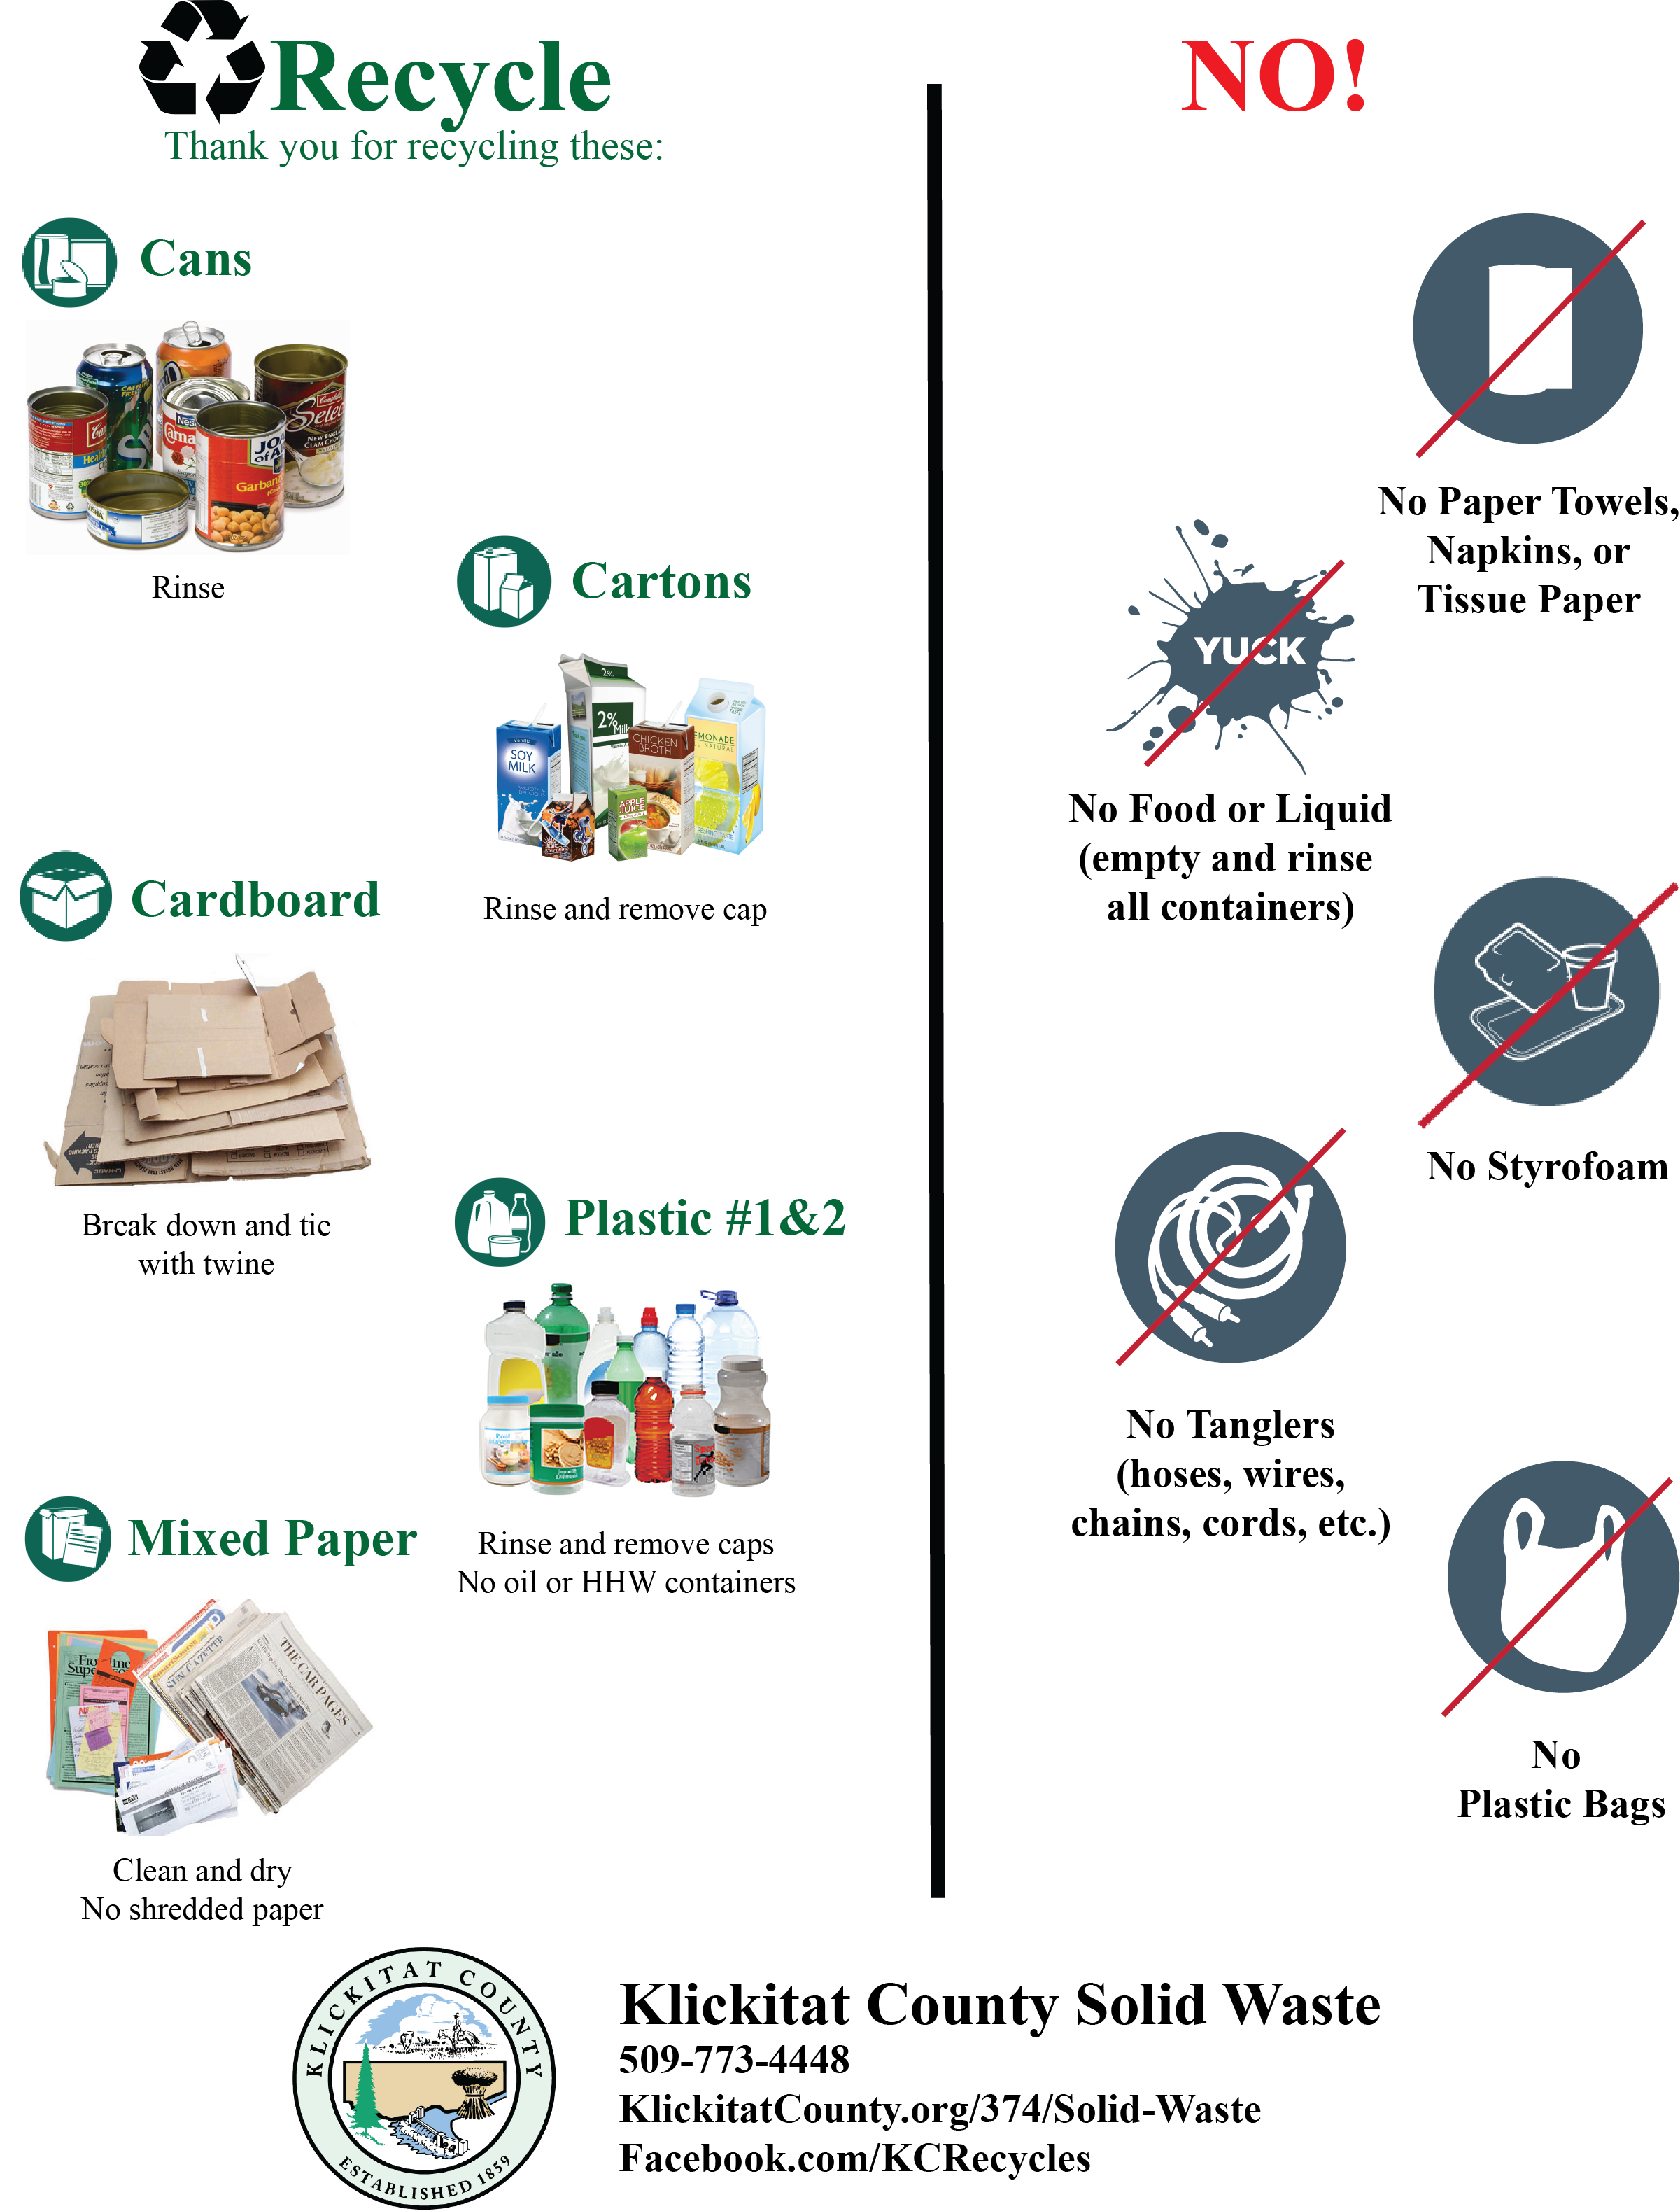 2019 Recycling Newsletter list